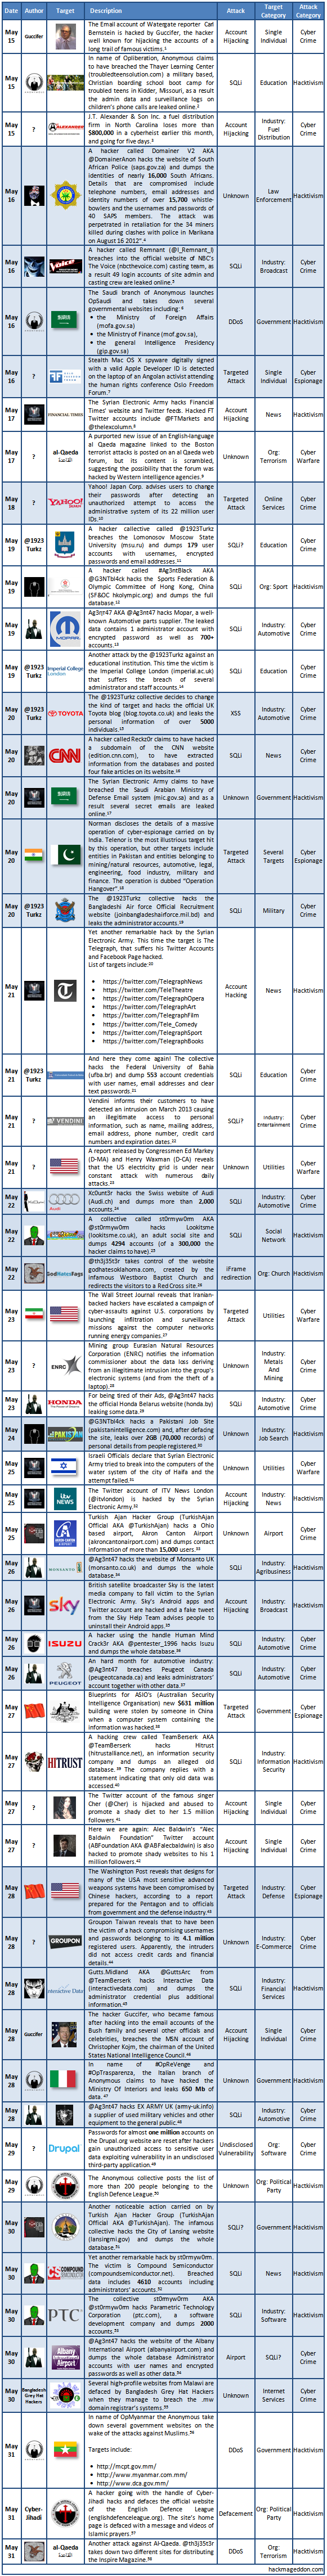 May 2013 Cyber Attacks Timeline Part II